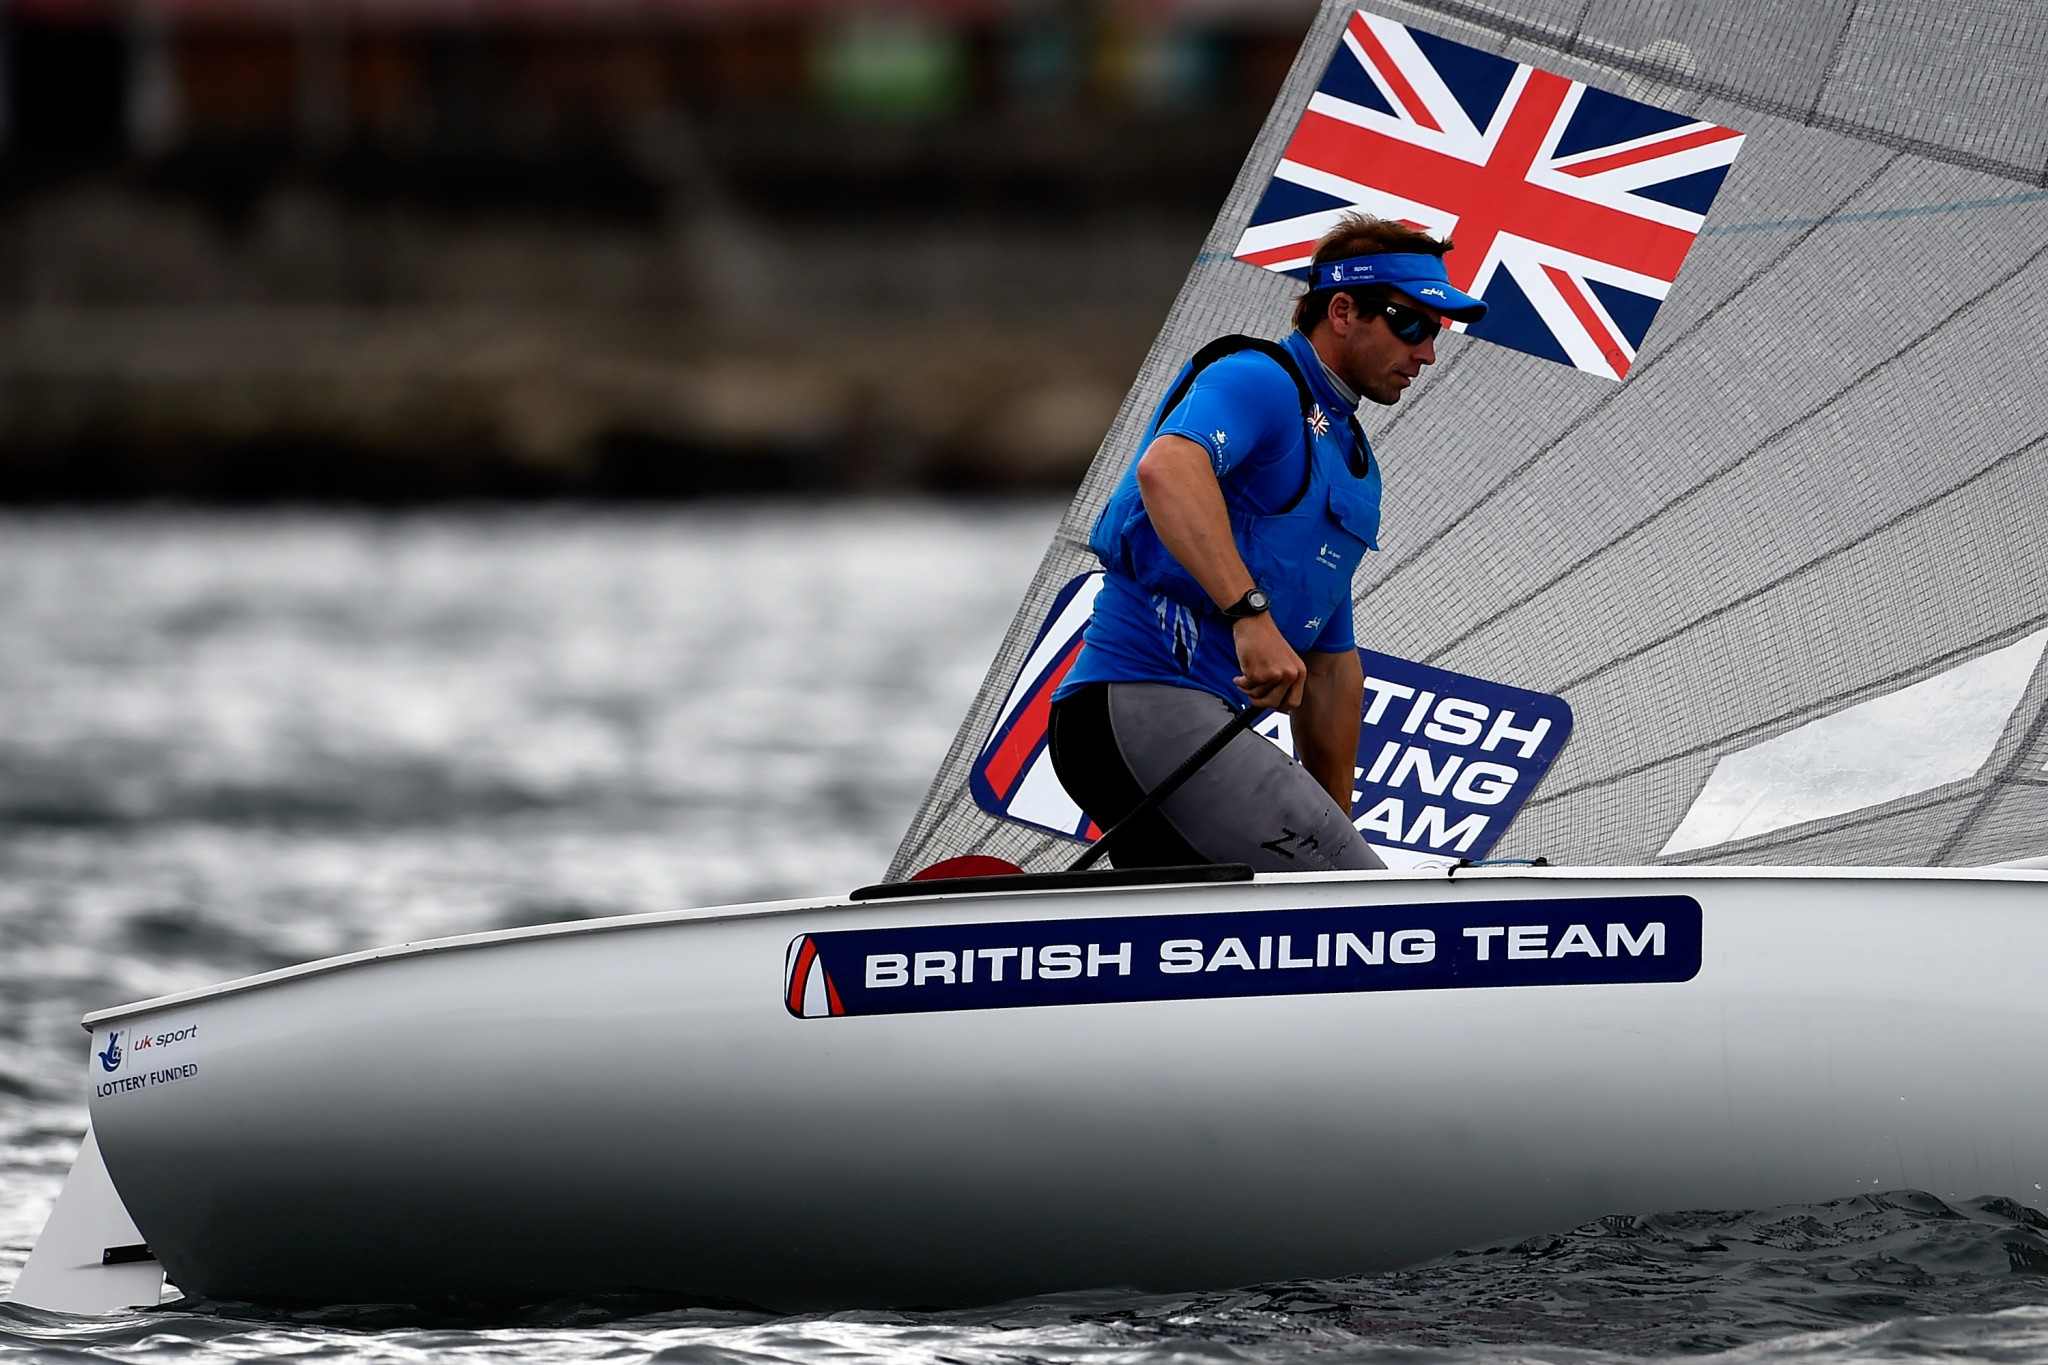 Britain's Ed Wright will be aiming to defend his title at the Finn European Championships in Athens ©Getty Images